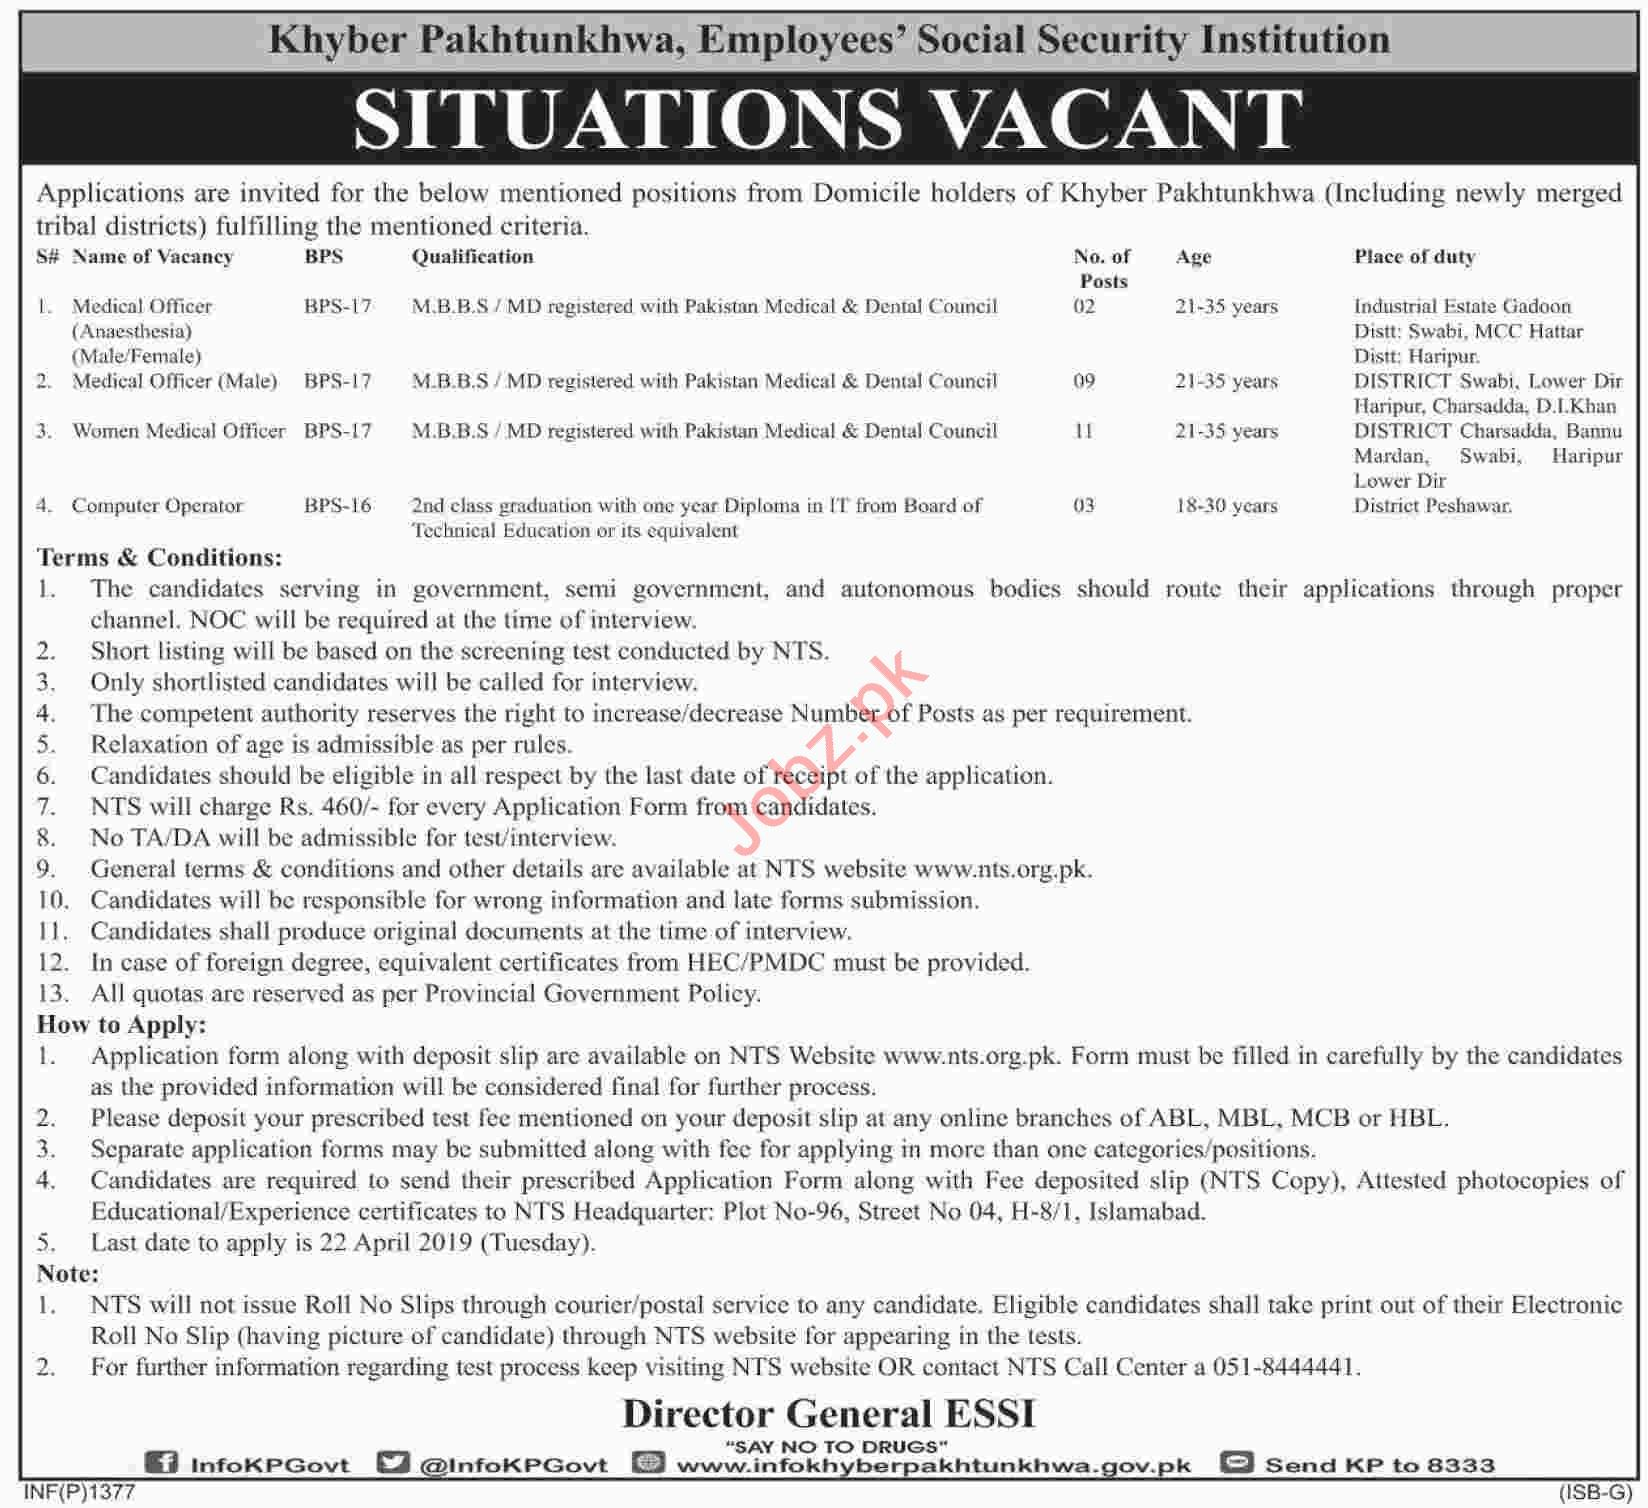 employees social security institution jobs in kpk via nts